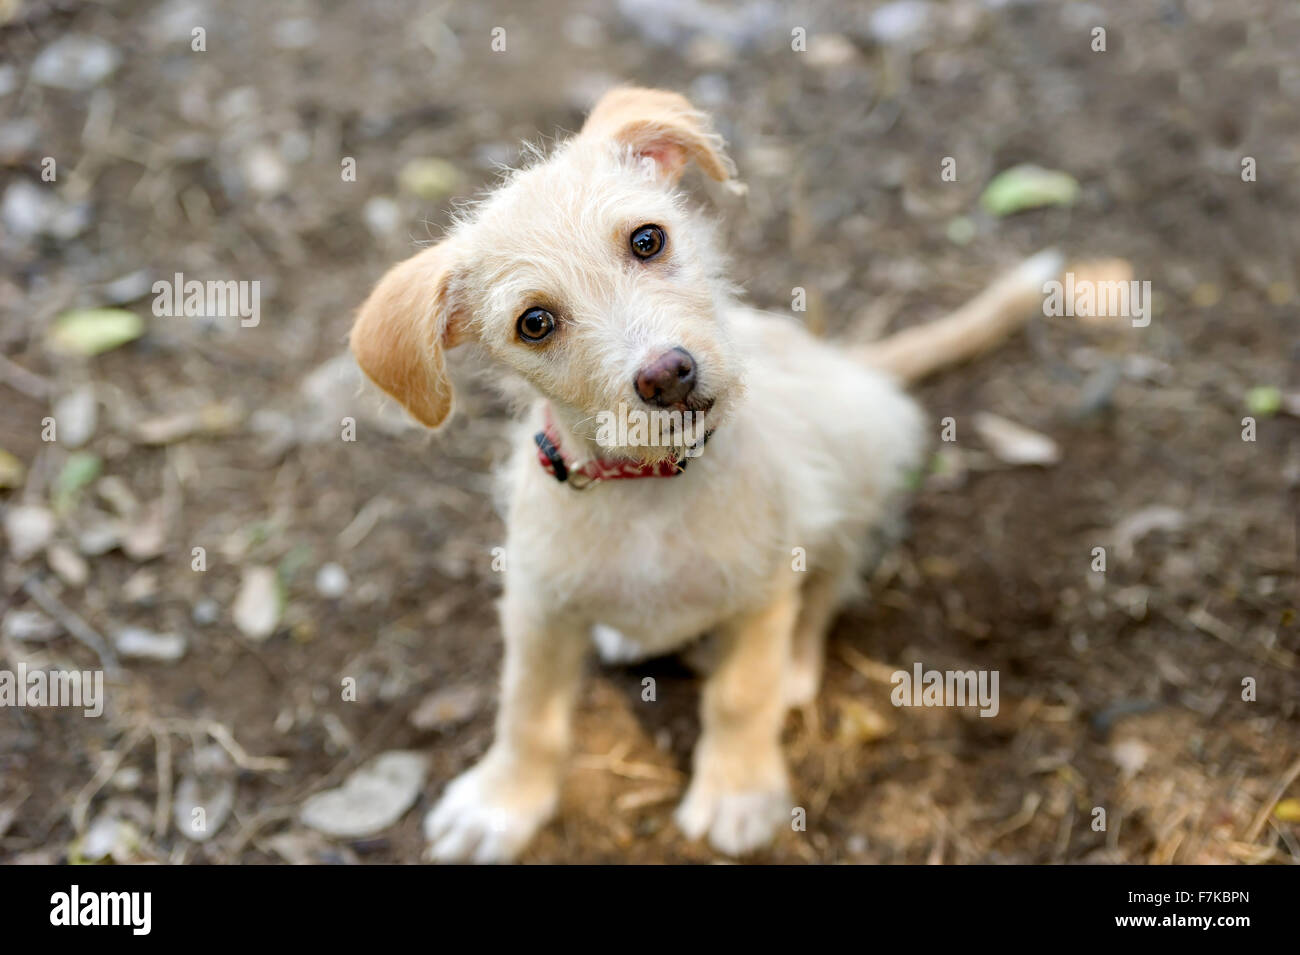 Cute dog is an adorable puppy dog with big brown beautiful eyes